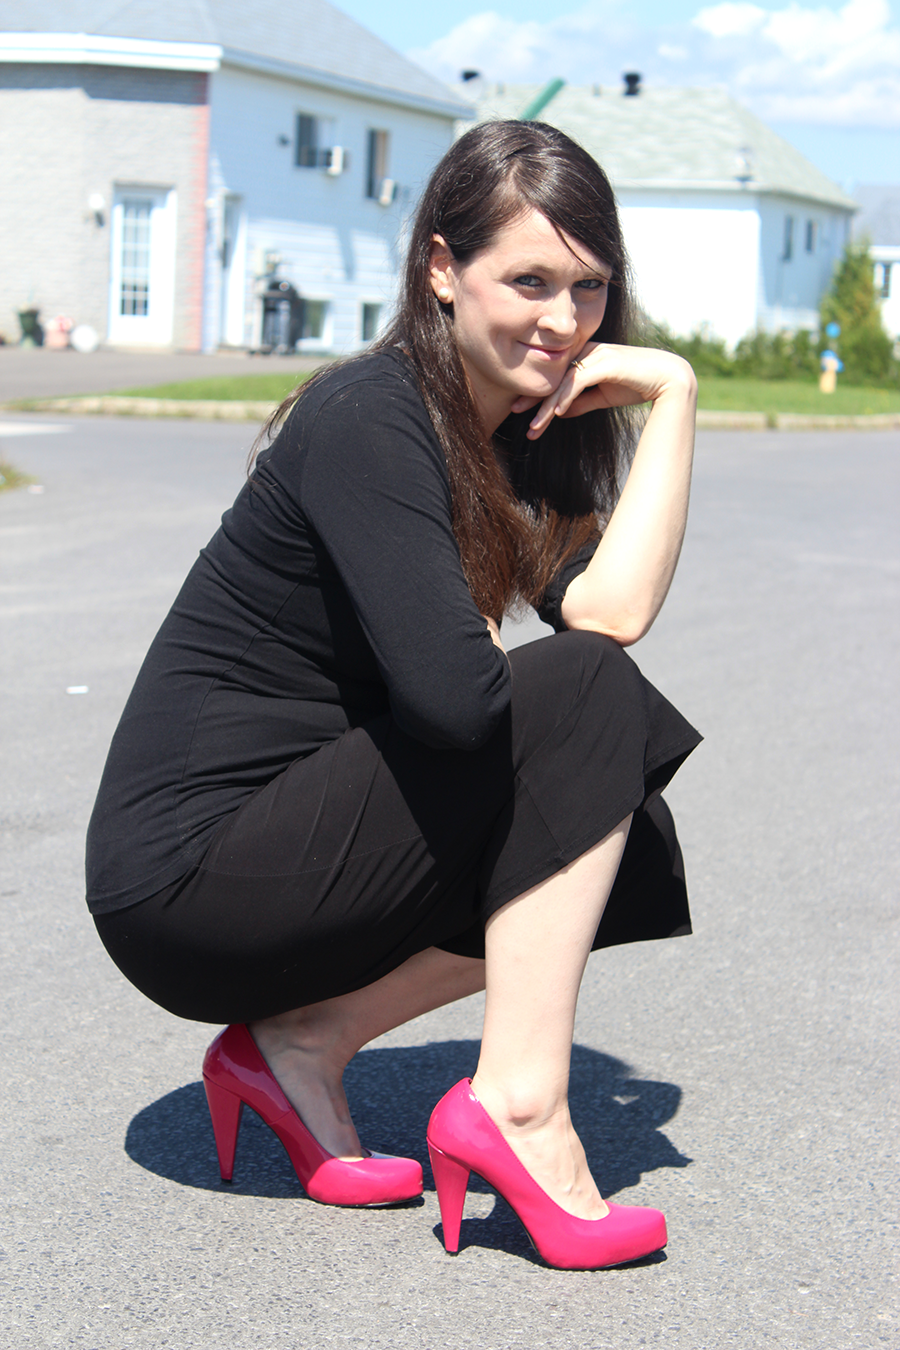 crouching with pink heels